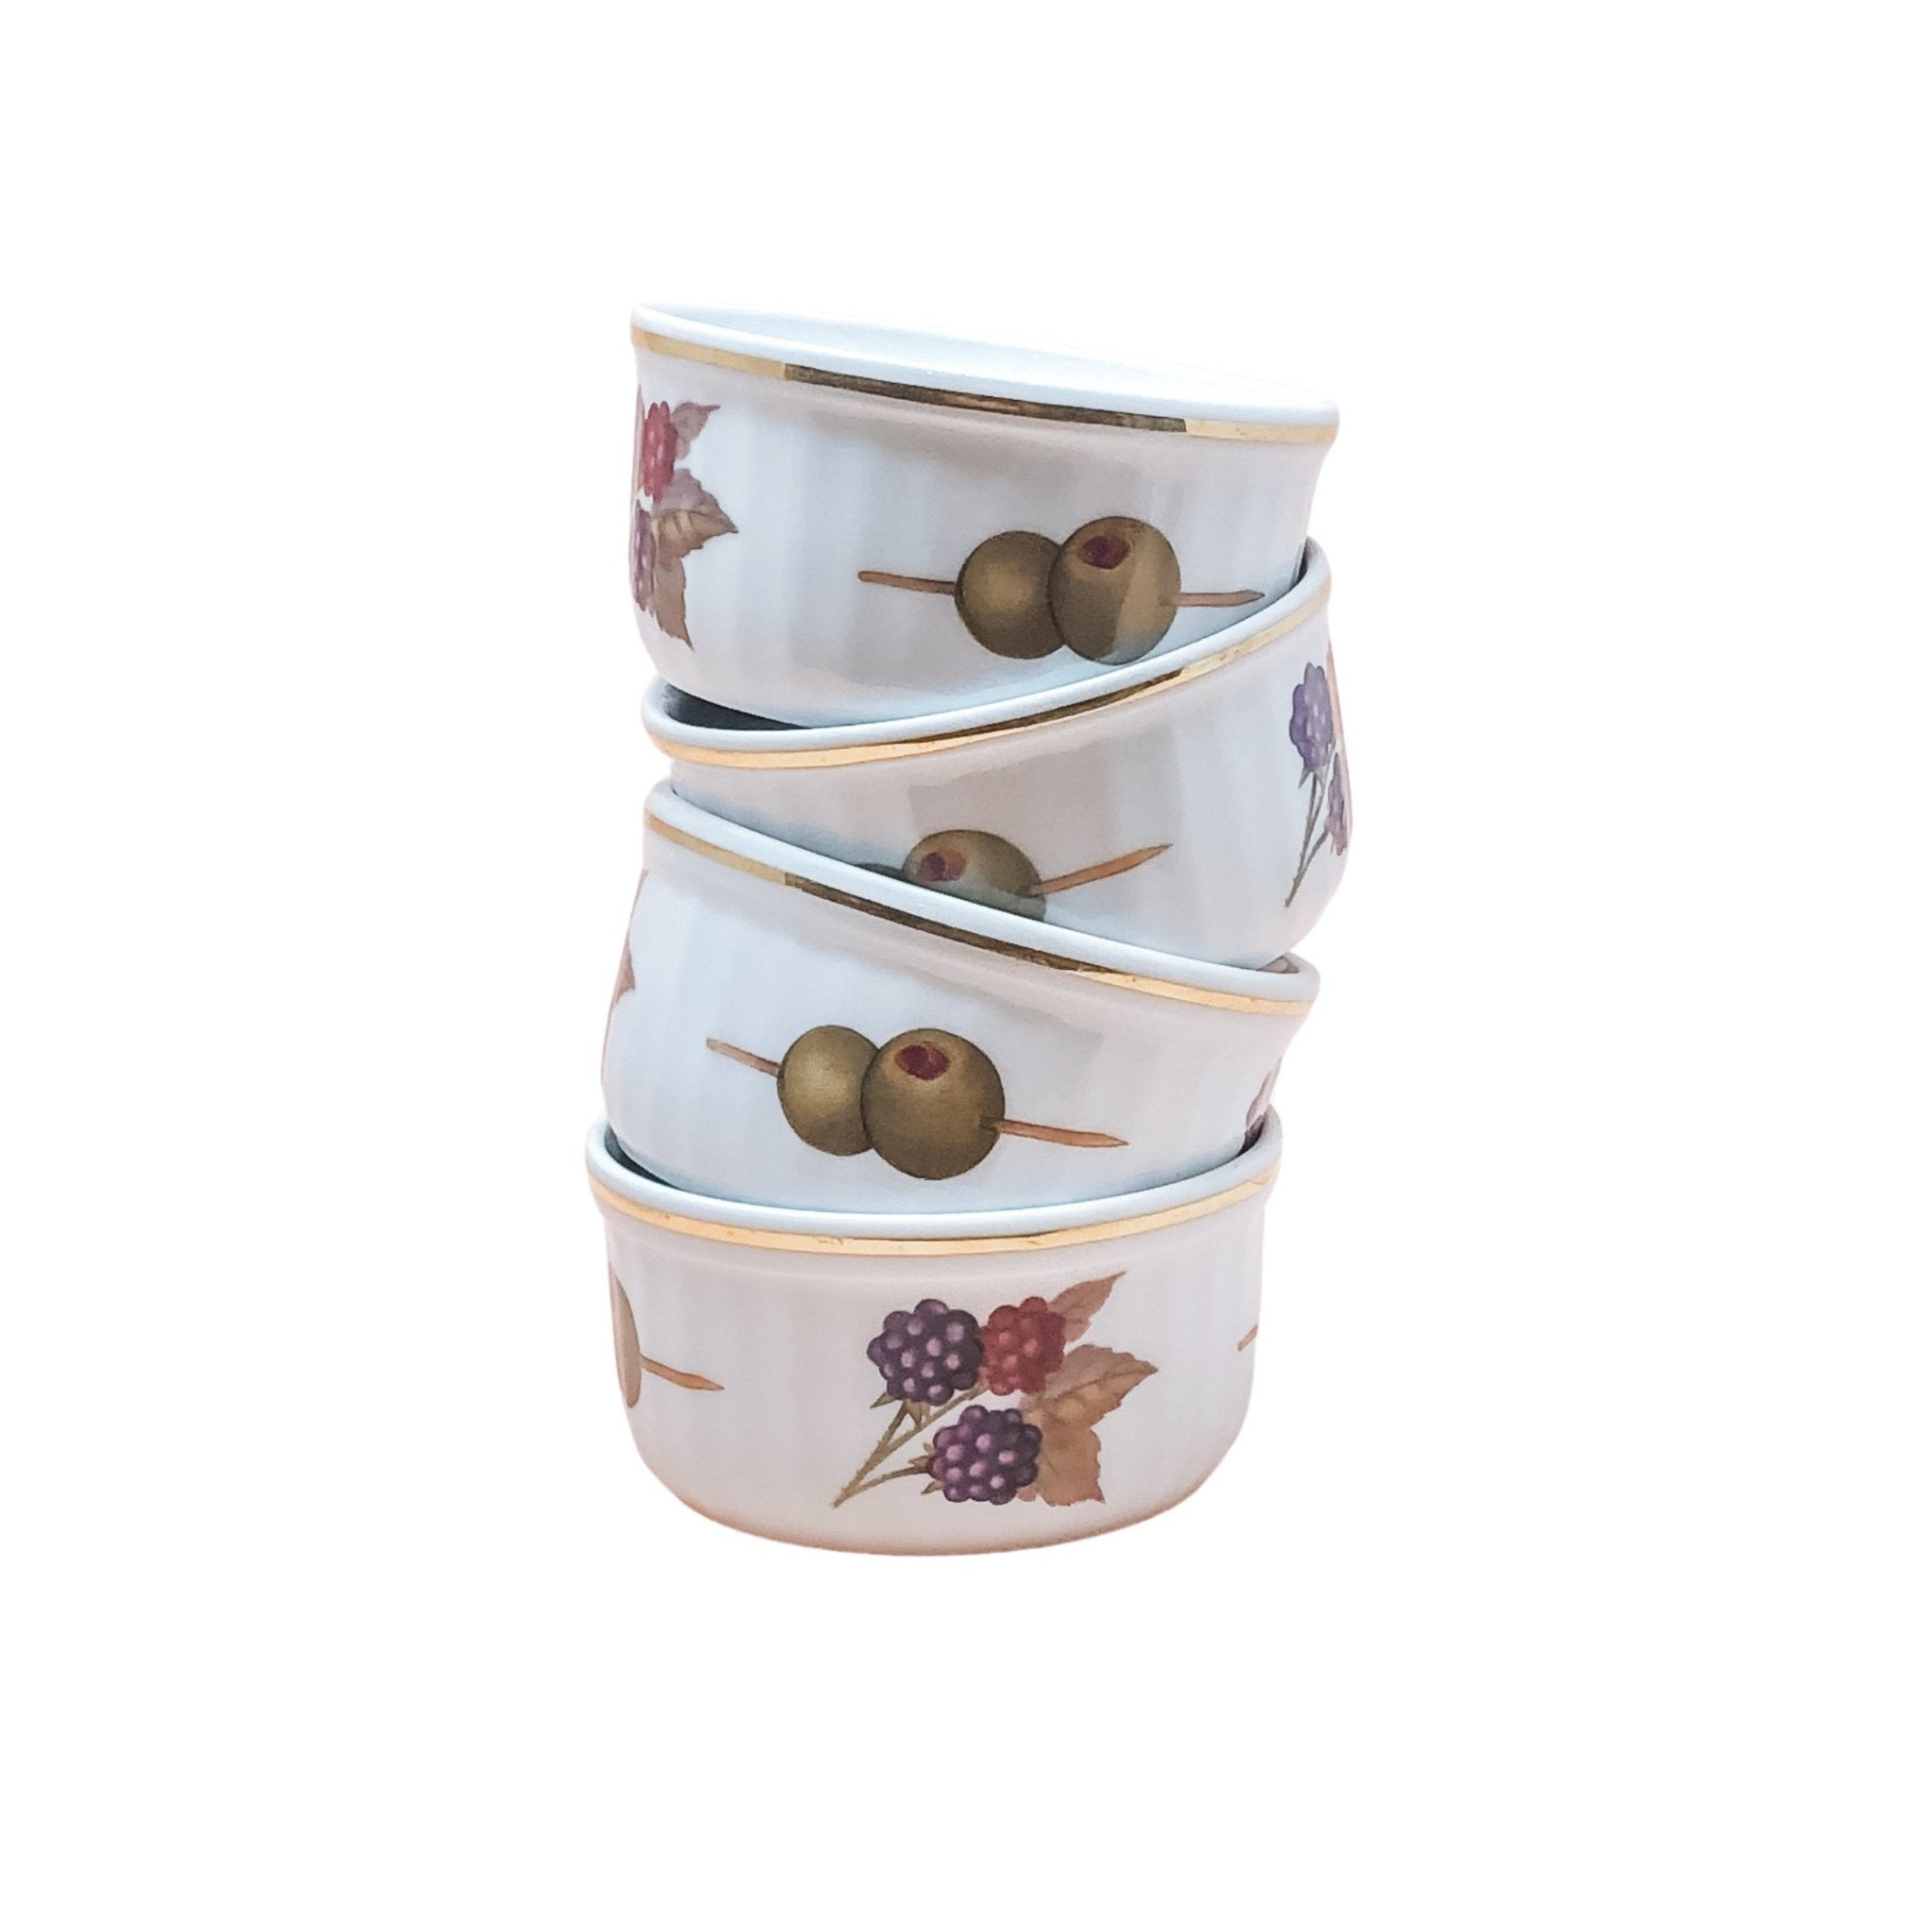 Royal Worcester Evesham | Ramekin and berry bowls (set of 4) | Royal Worcester - The Brooklyn Teacup